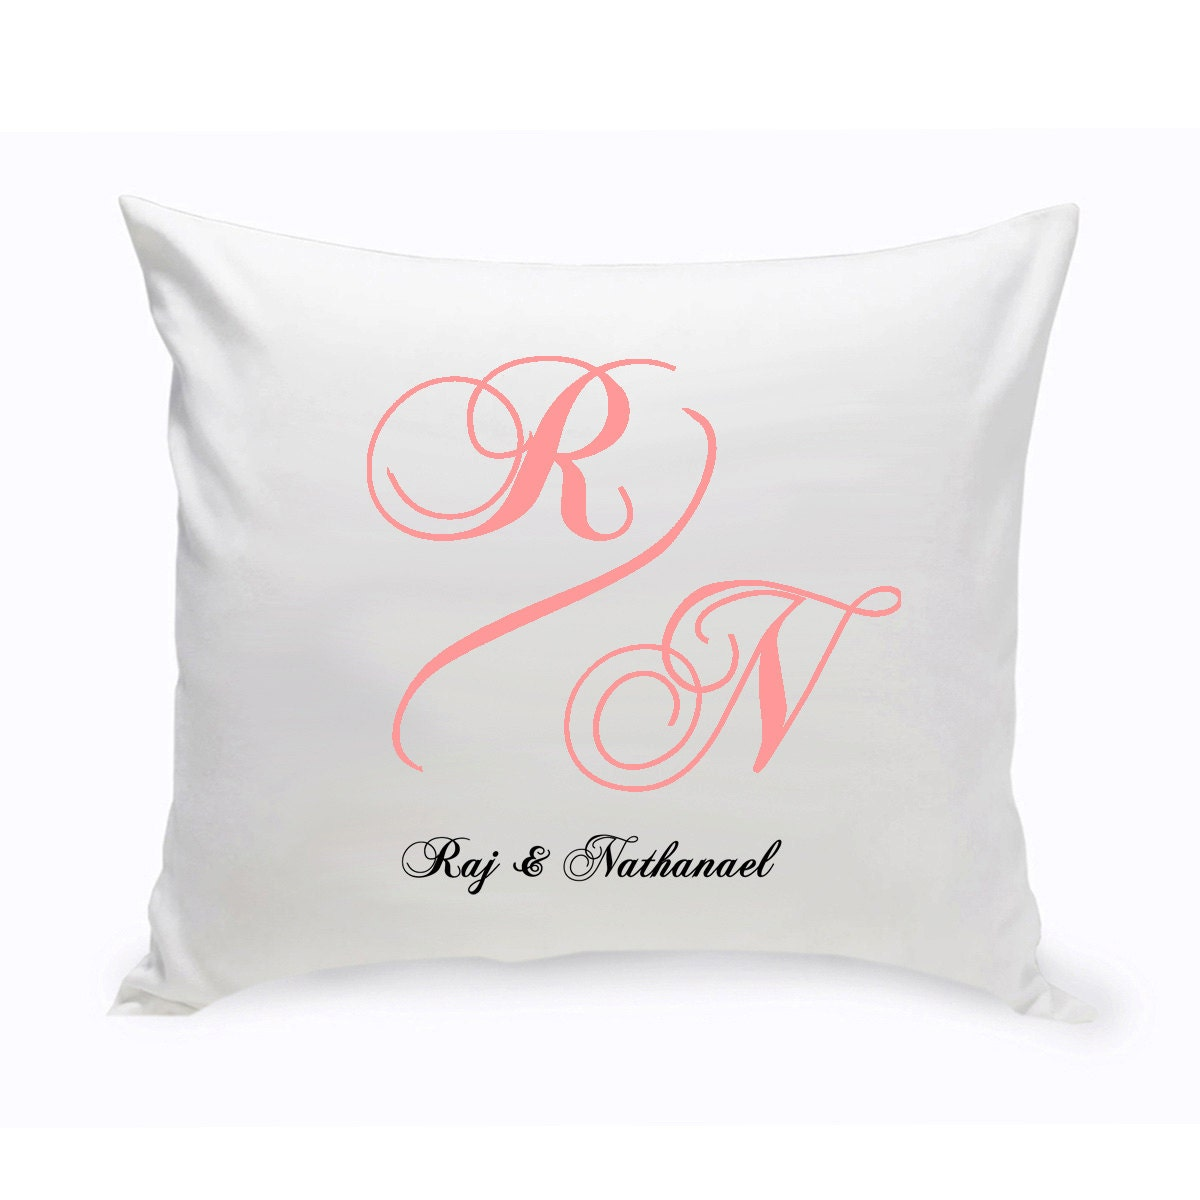 Throw Pillows Custom : Personalized Couples Unity Throw Pillow Couples Personalized